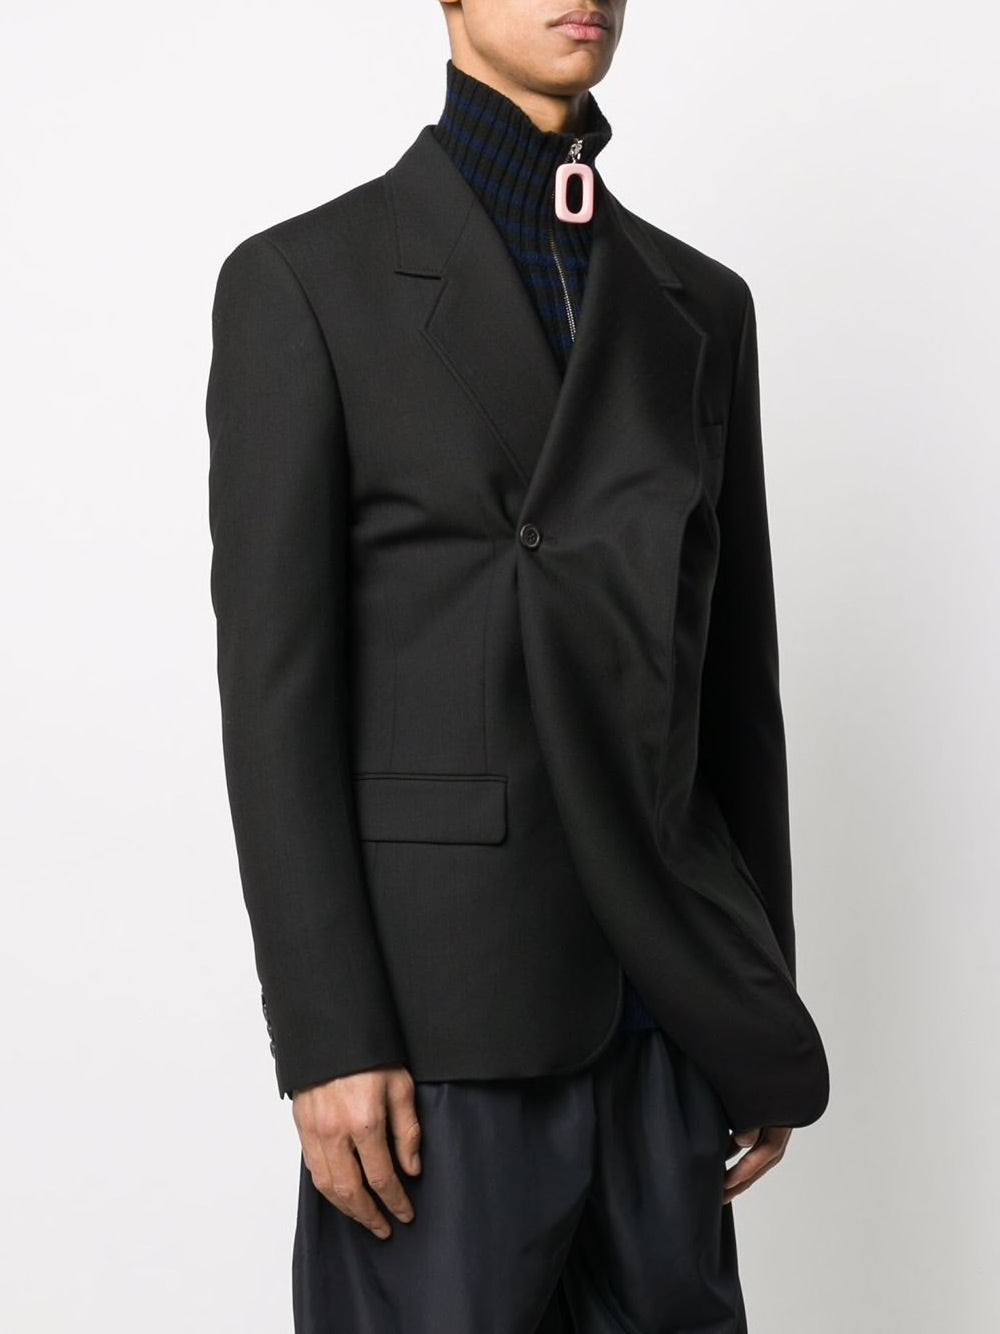 Y/PROJECT UNISEX TWISTED LAPEL BLAZER